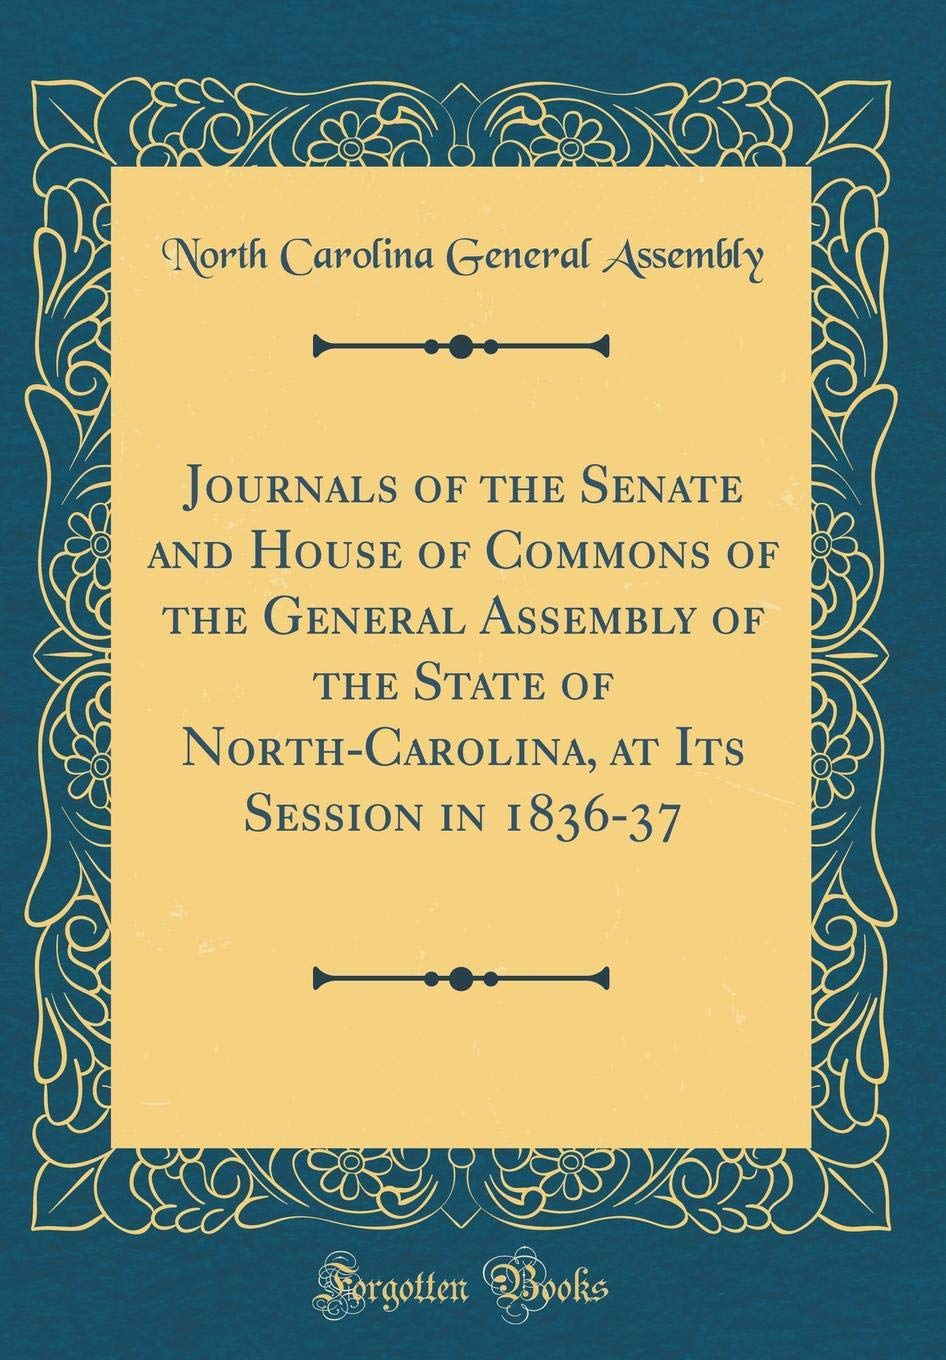 Download Journals of the Senate and House of Commons of the General Assembly of the State of North-Carolina, at Its Session in 1836-37 (Classic Reprint) PDF